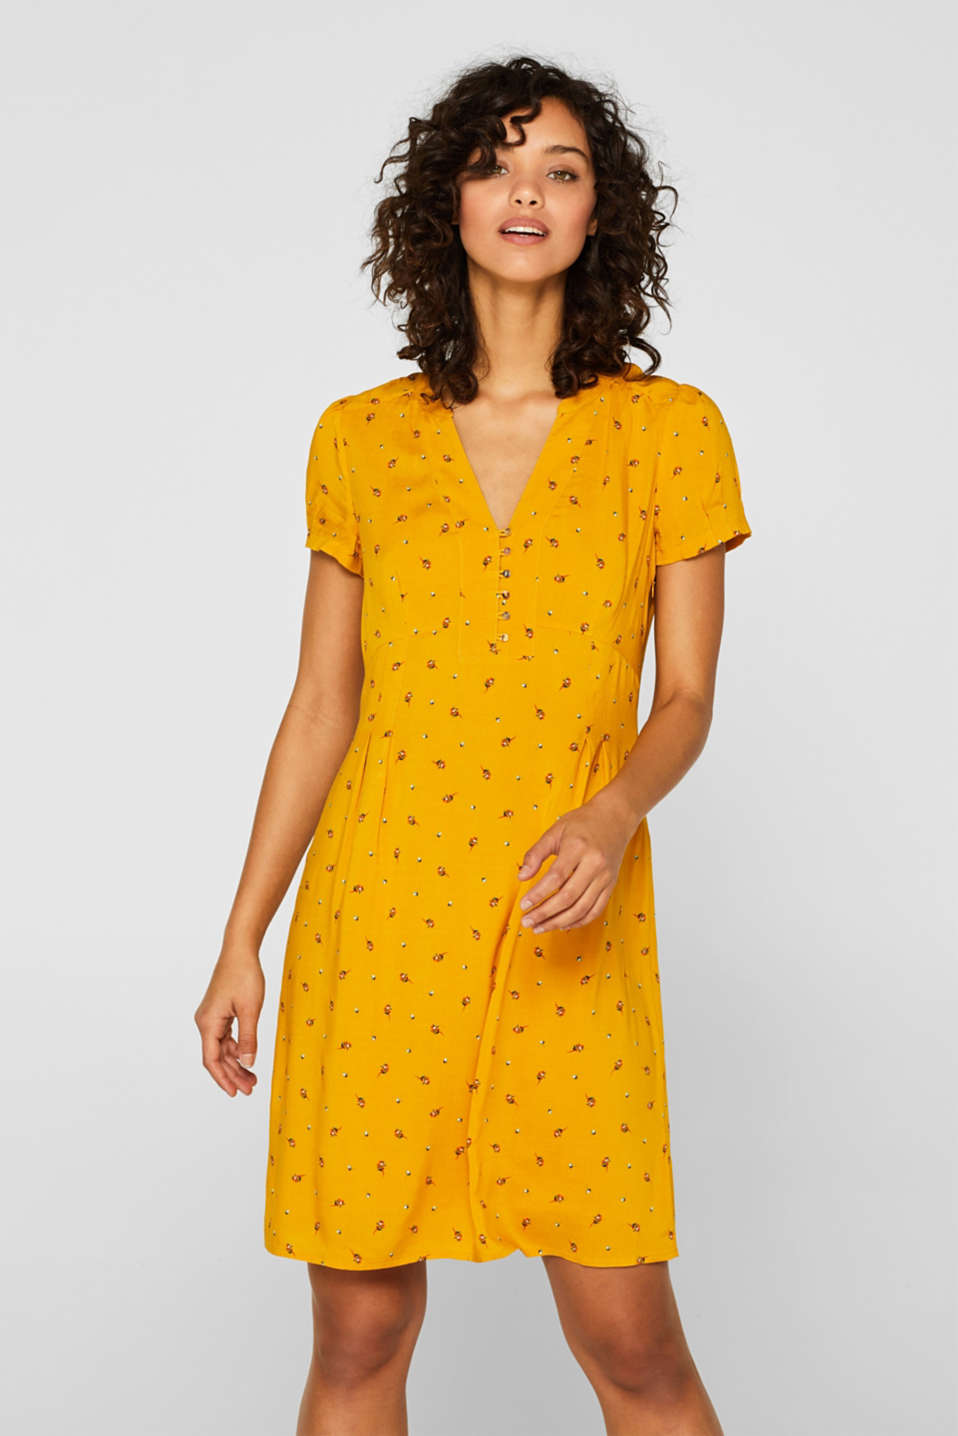 Esprit - Printed woven dress with a button placket